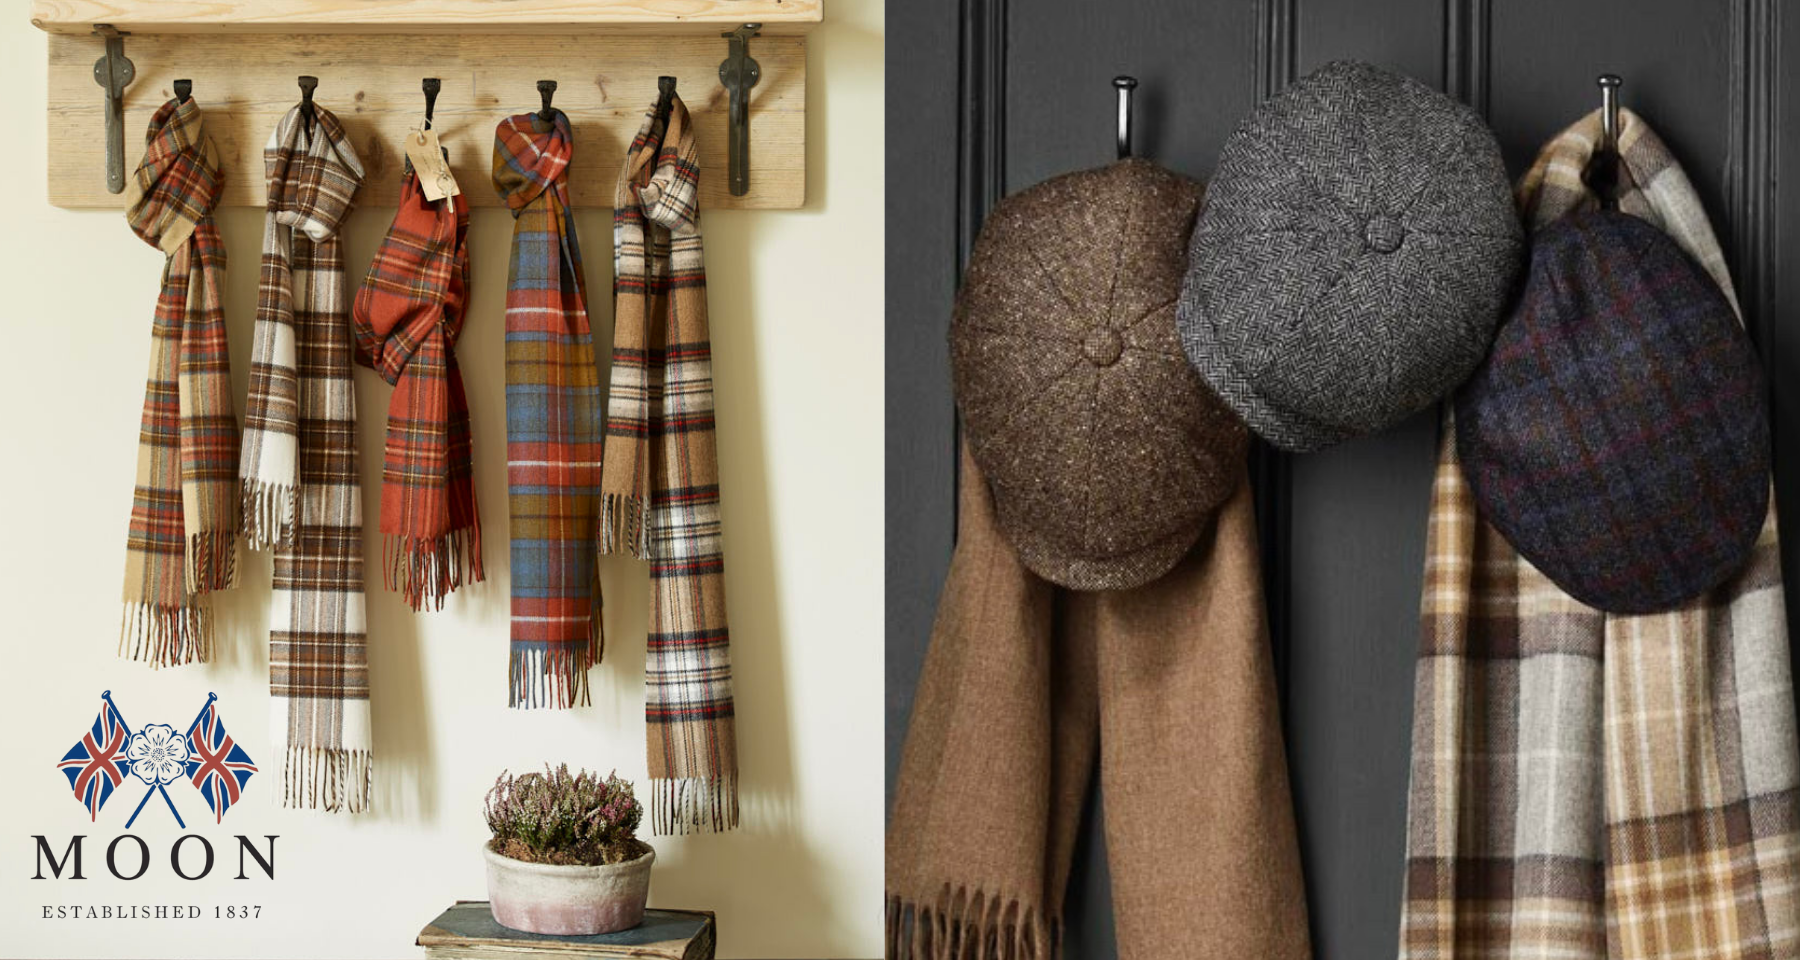 Abraham Moon & Sons luxury wool hats and scarves.